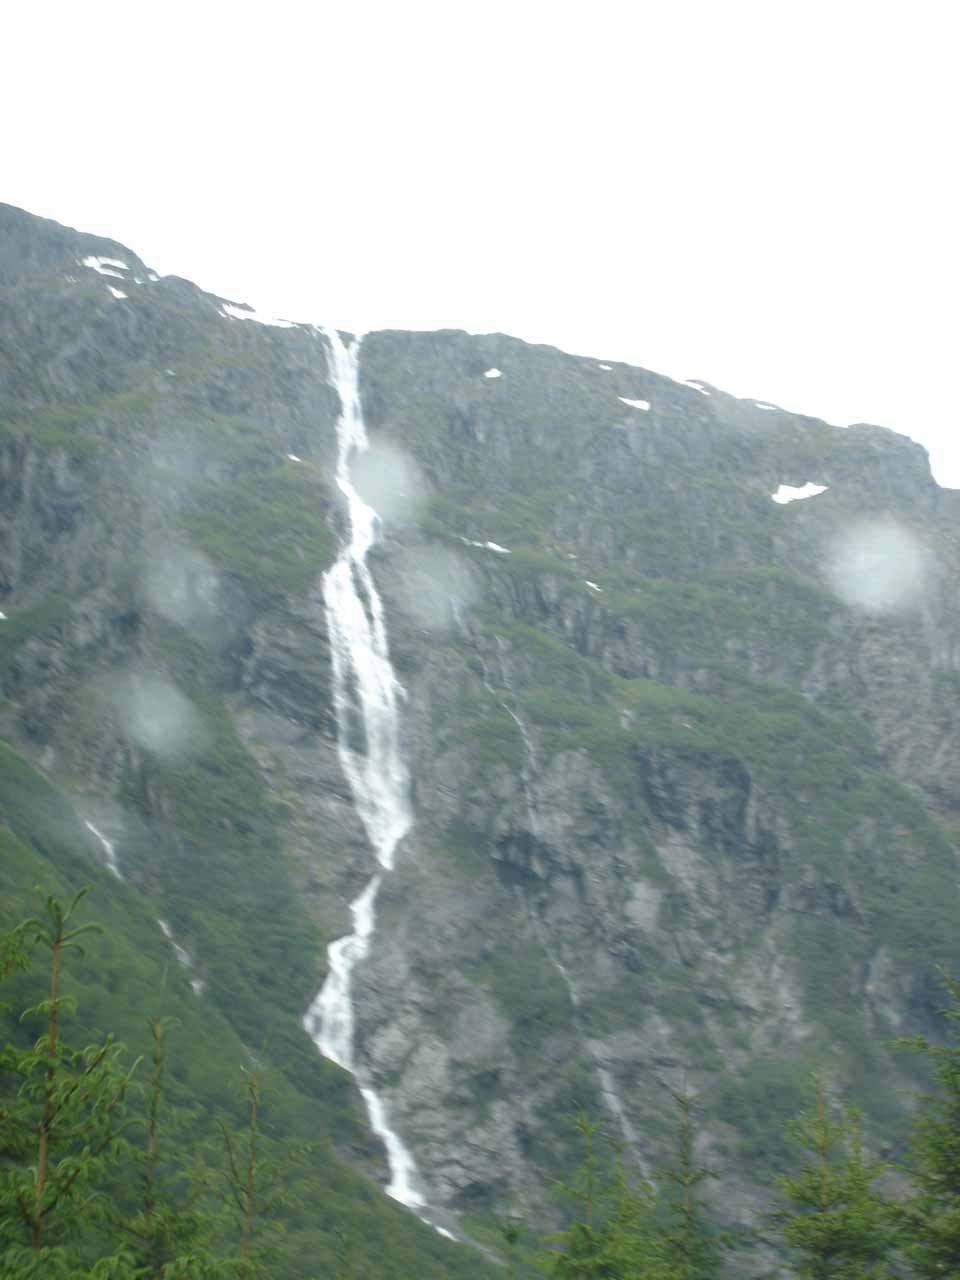 Now looking directly up at Ølmåafossen through some of the rain drops on the window